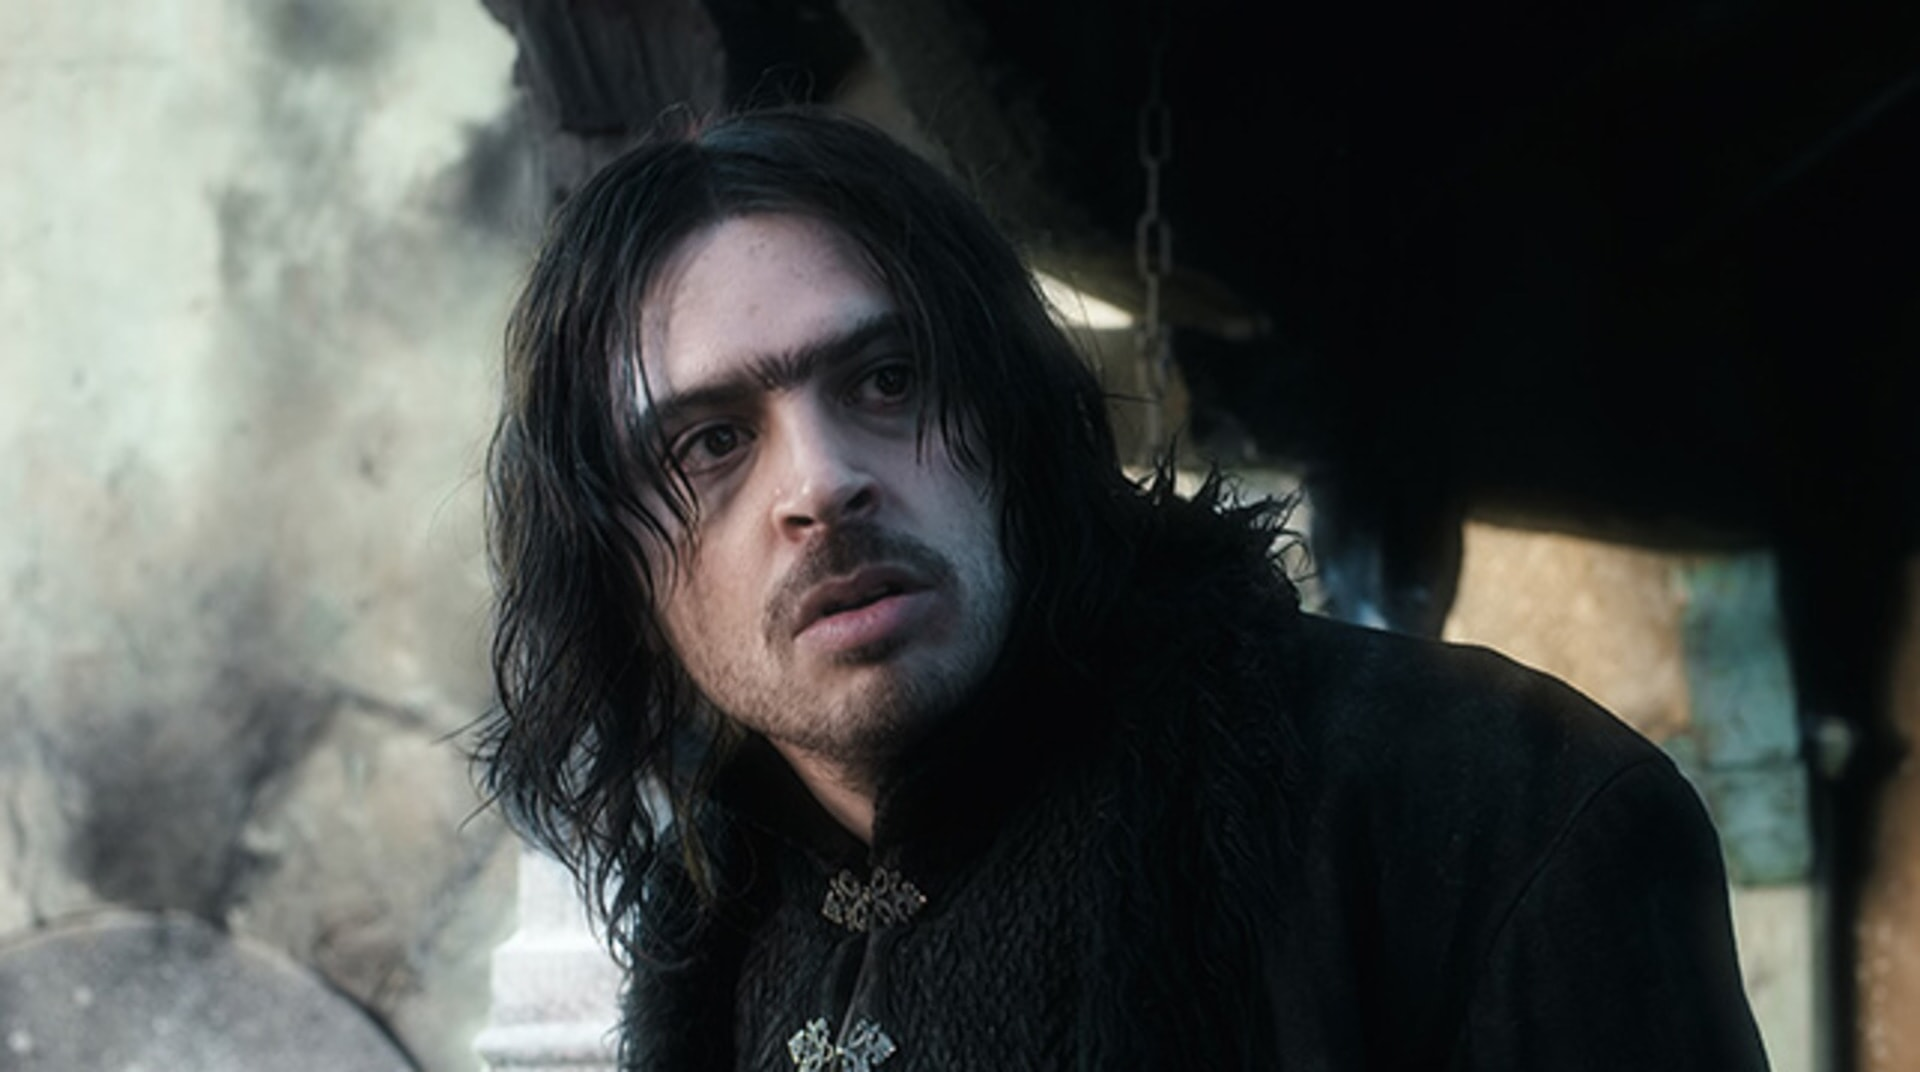 The Hobbit: The Battle of the Five Armies - Image 37